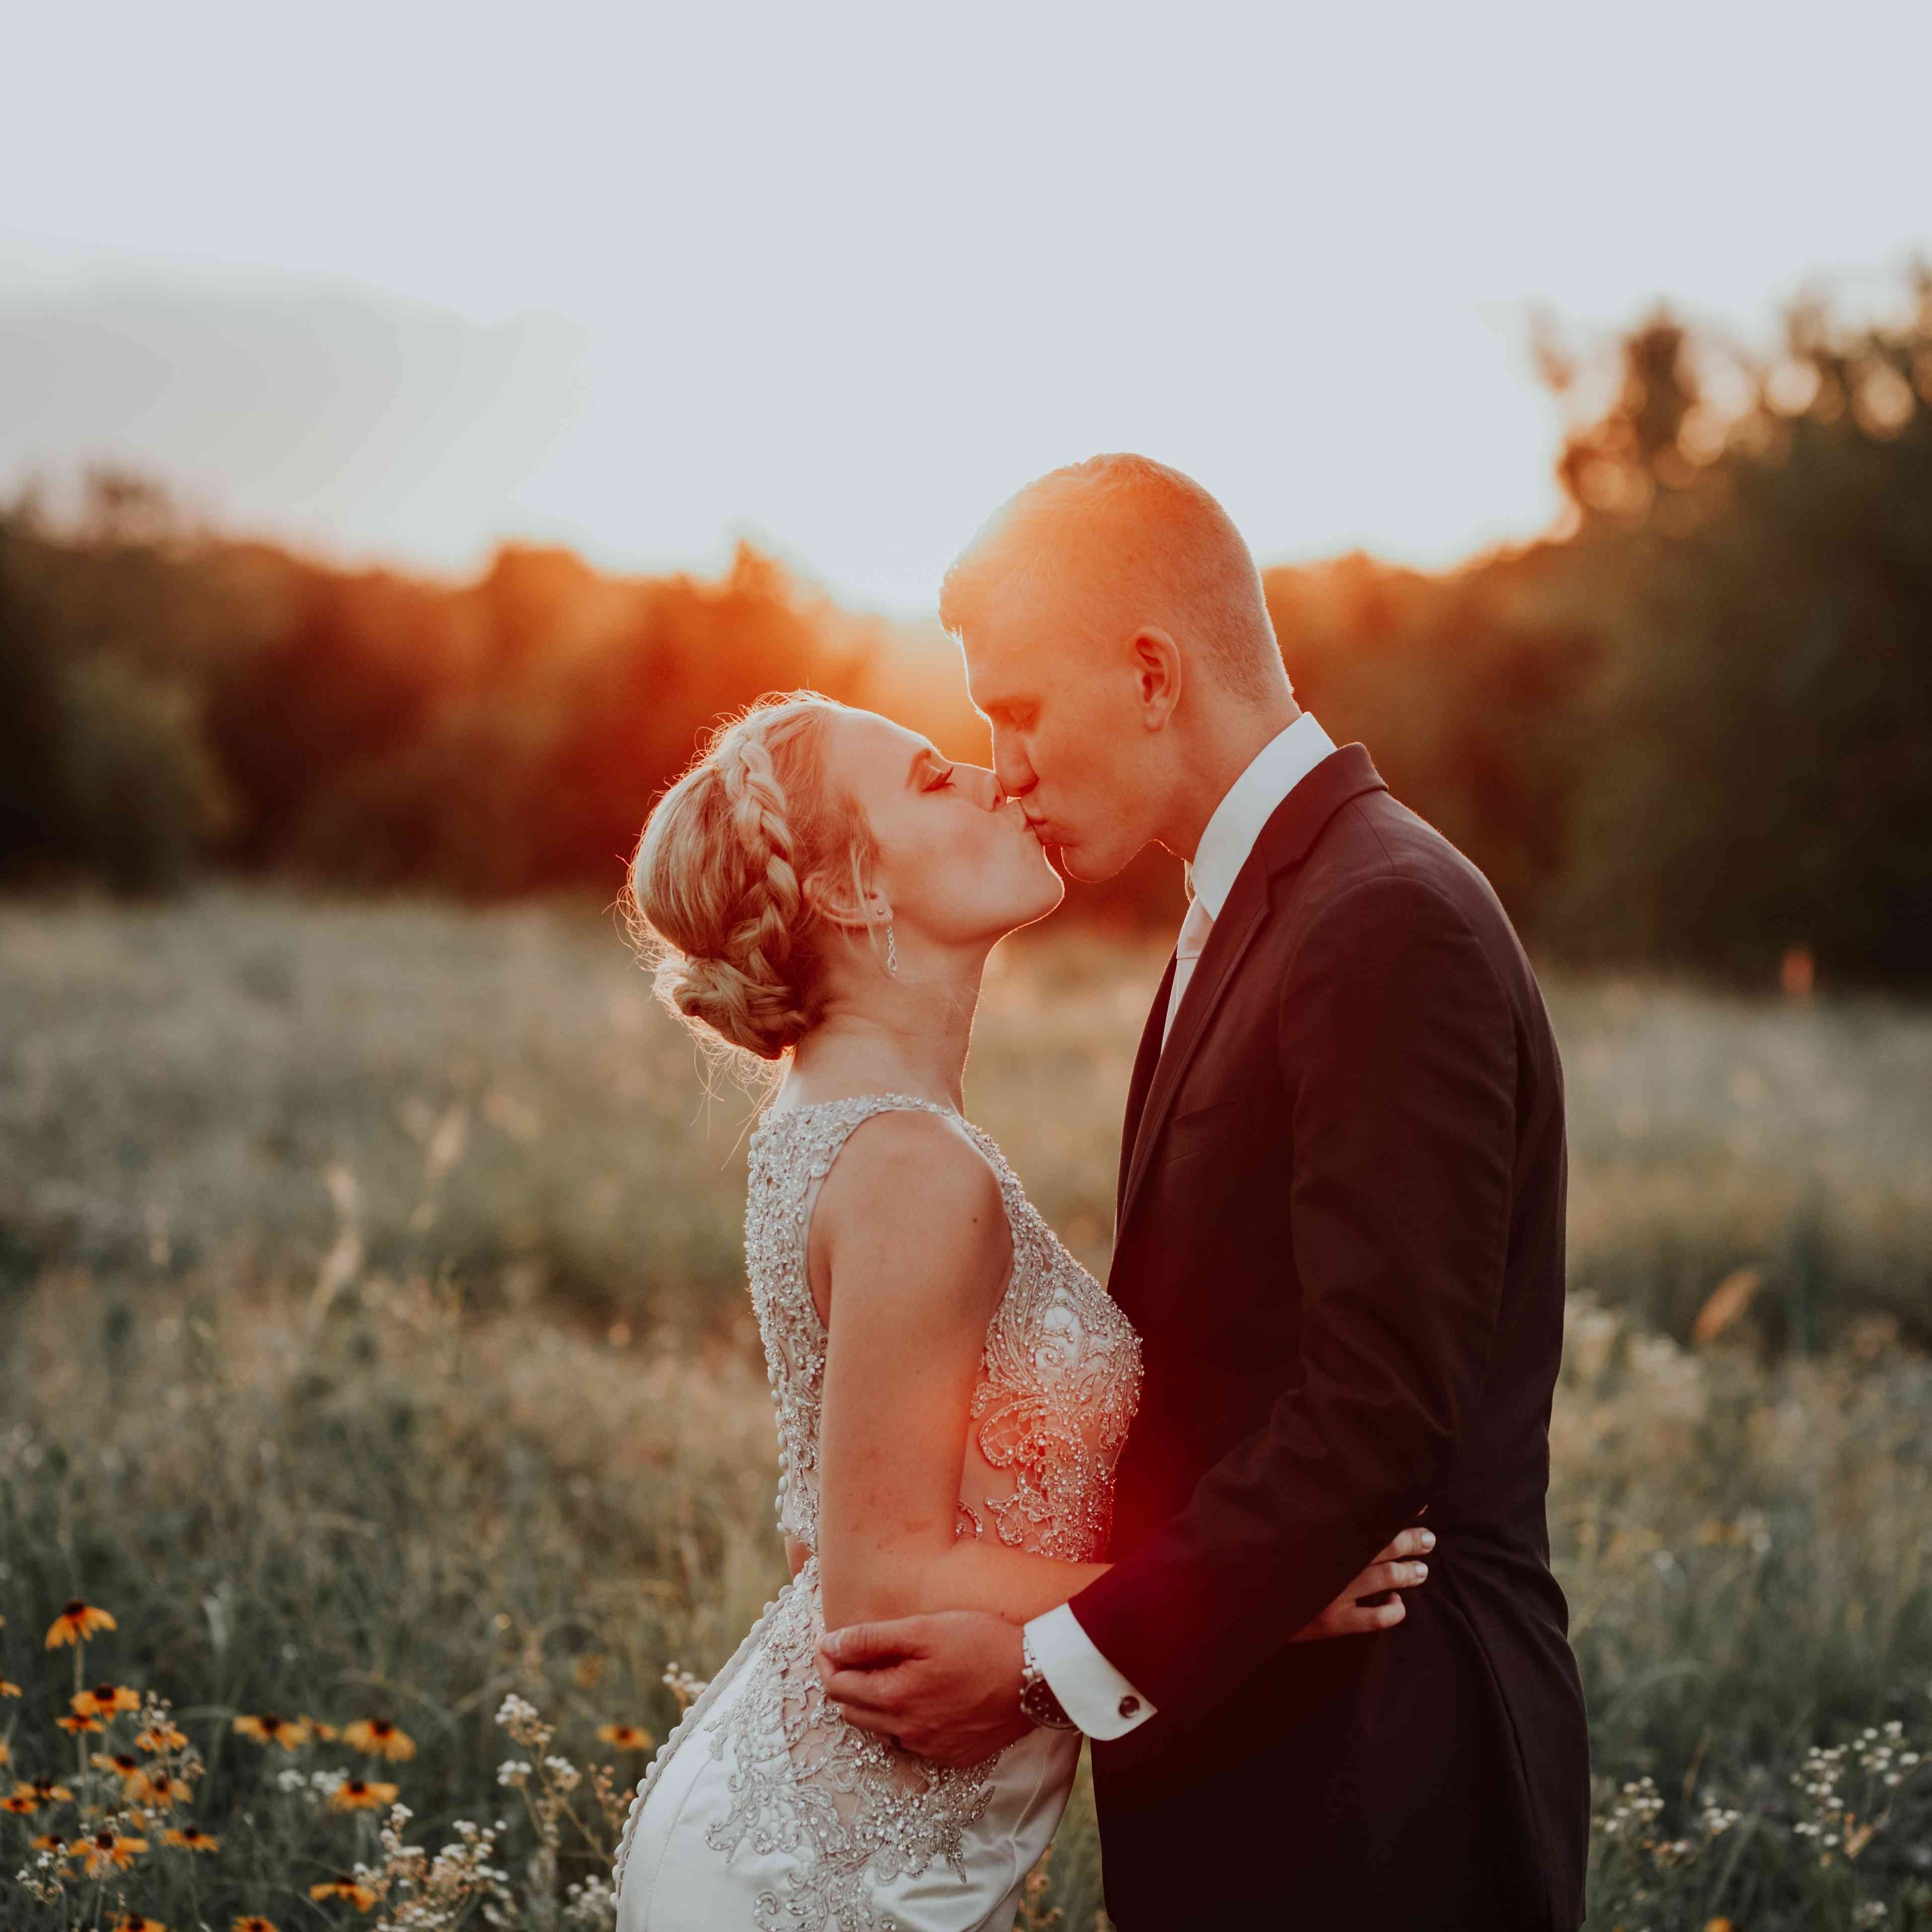 50 of the Most Epic Wedding Photos From Across the USA